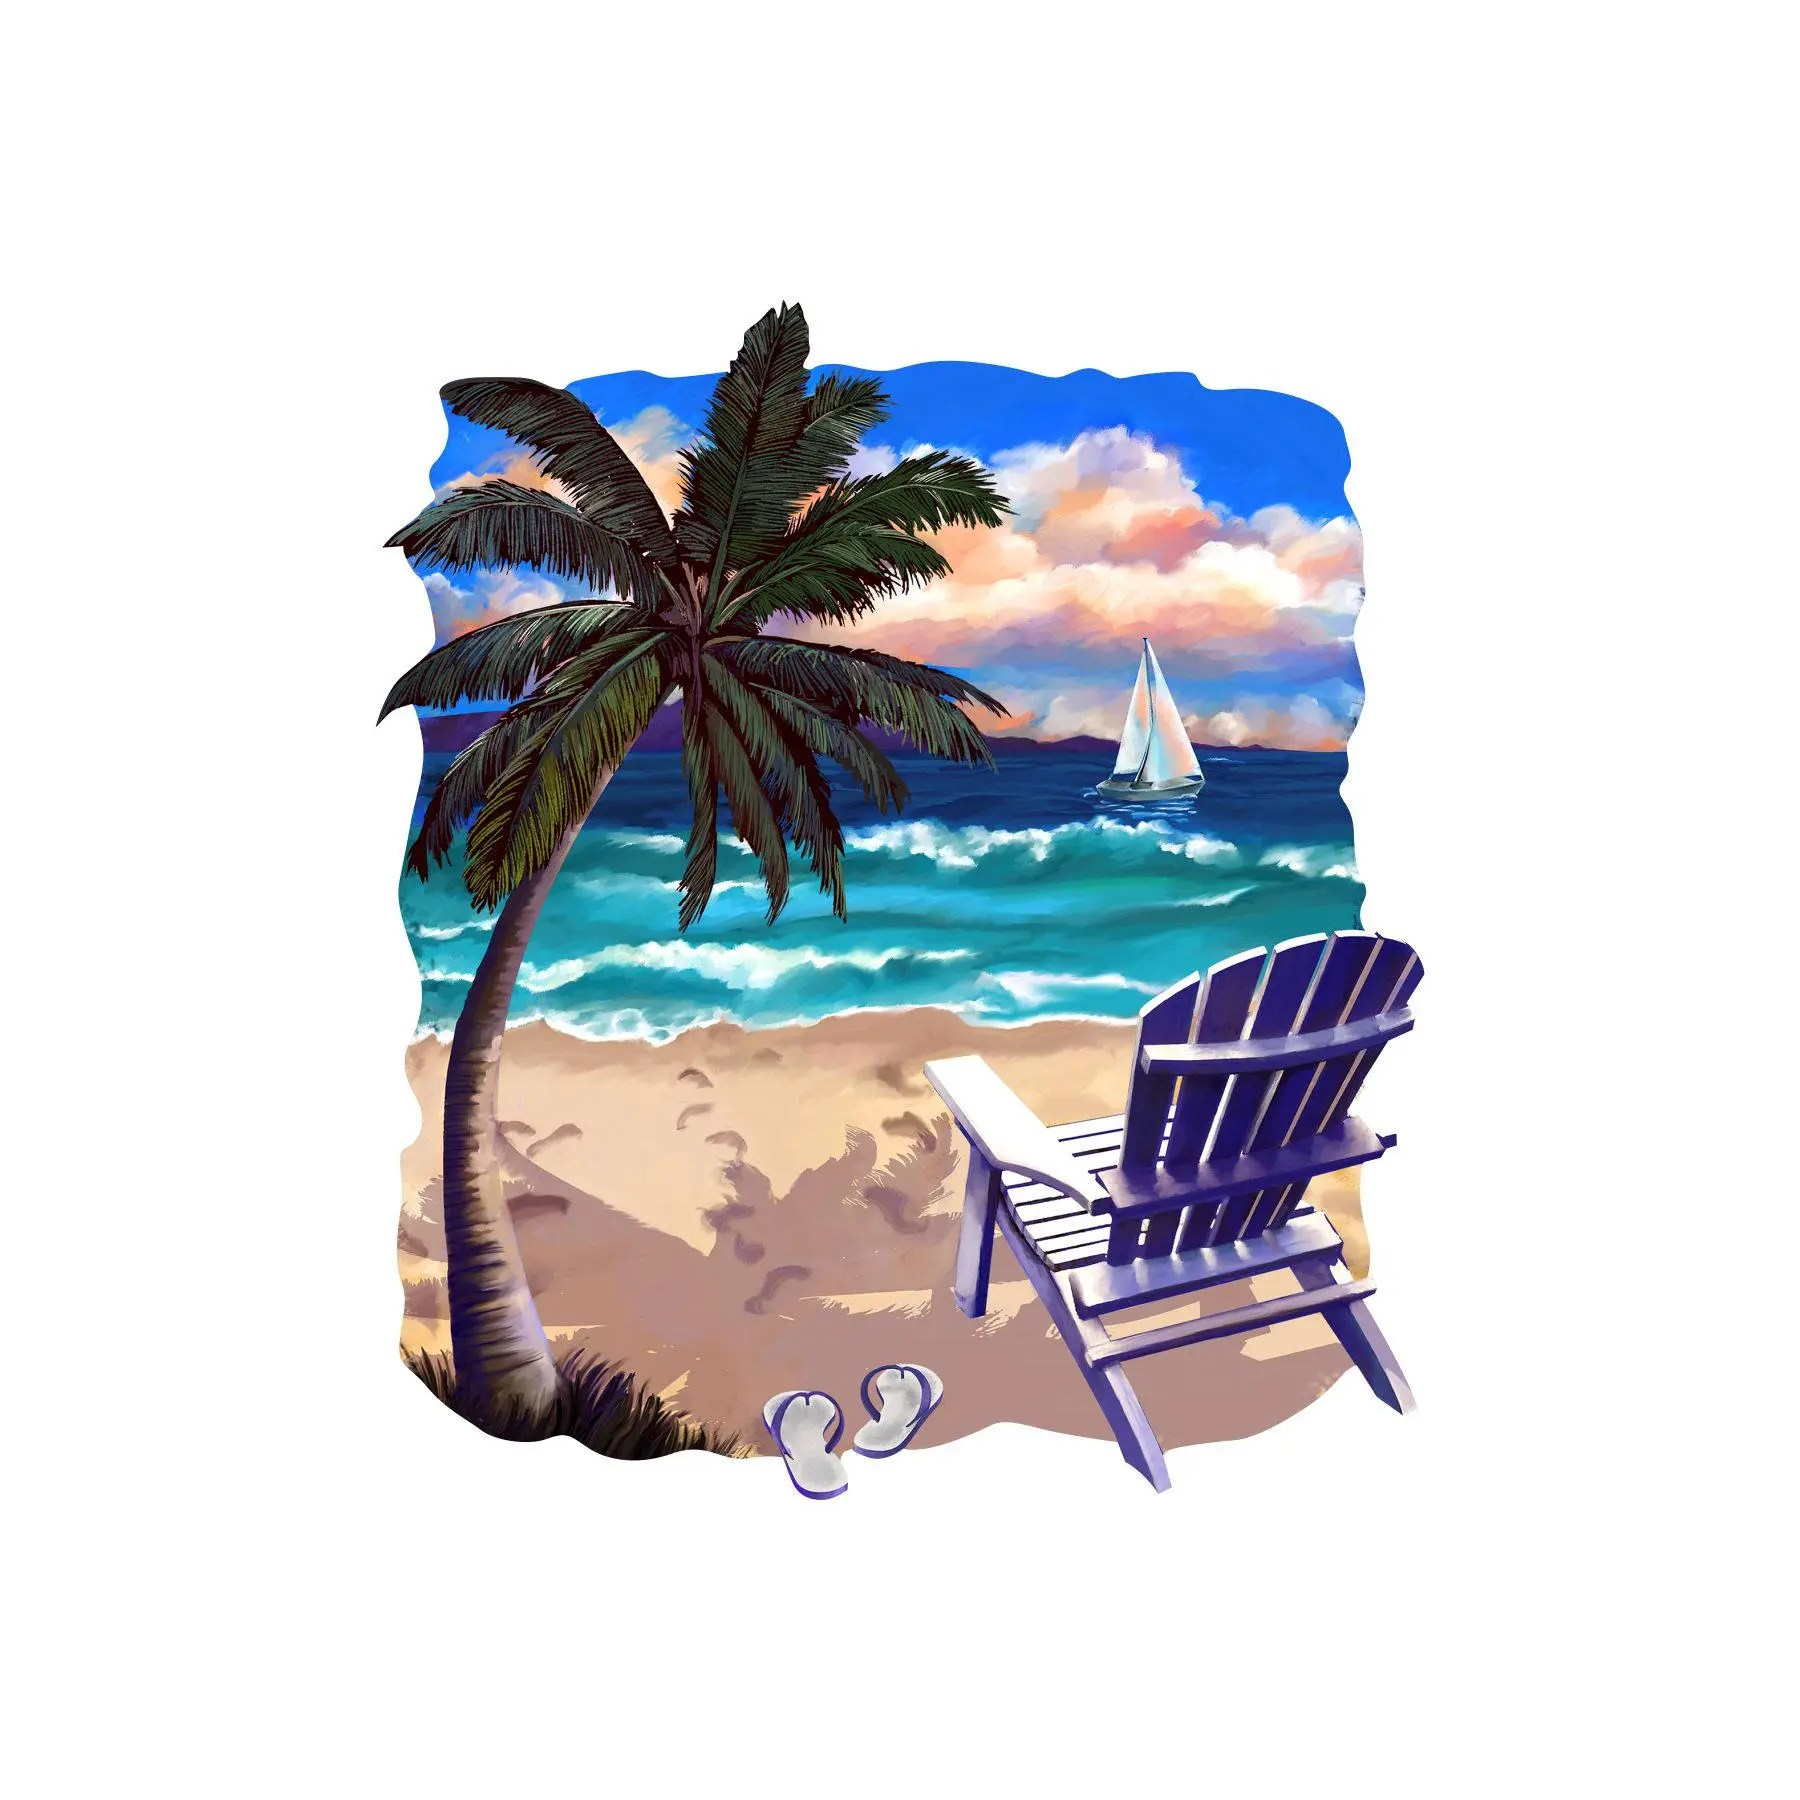 Where To Buy Beach Chairs Beach Chair And Palm Tree Decal Full Color Sticker Summer Decal Relaxation Sticker Fun In The Sun Decal